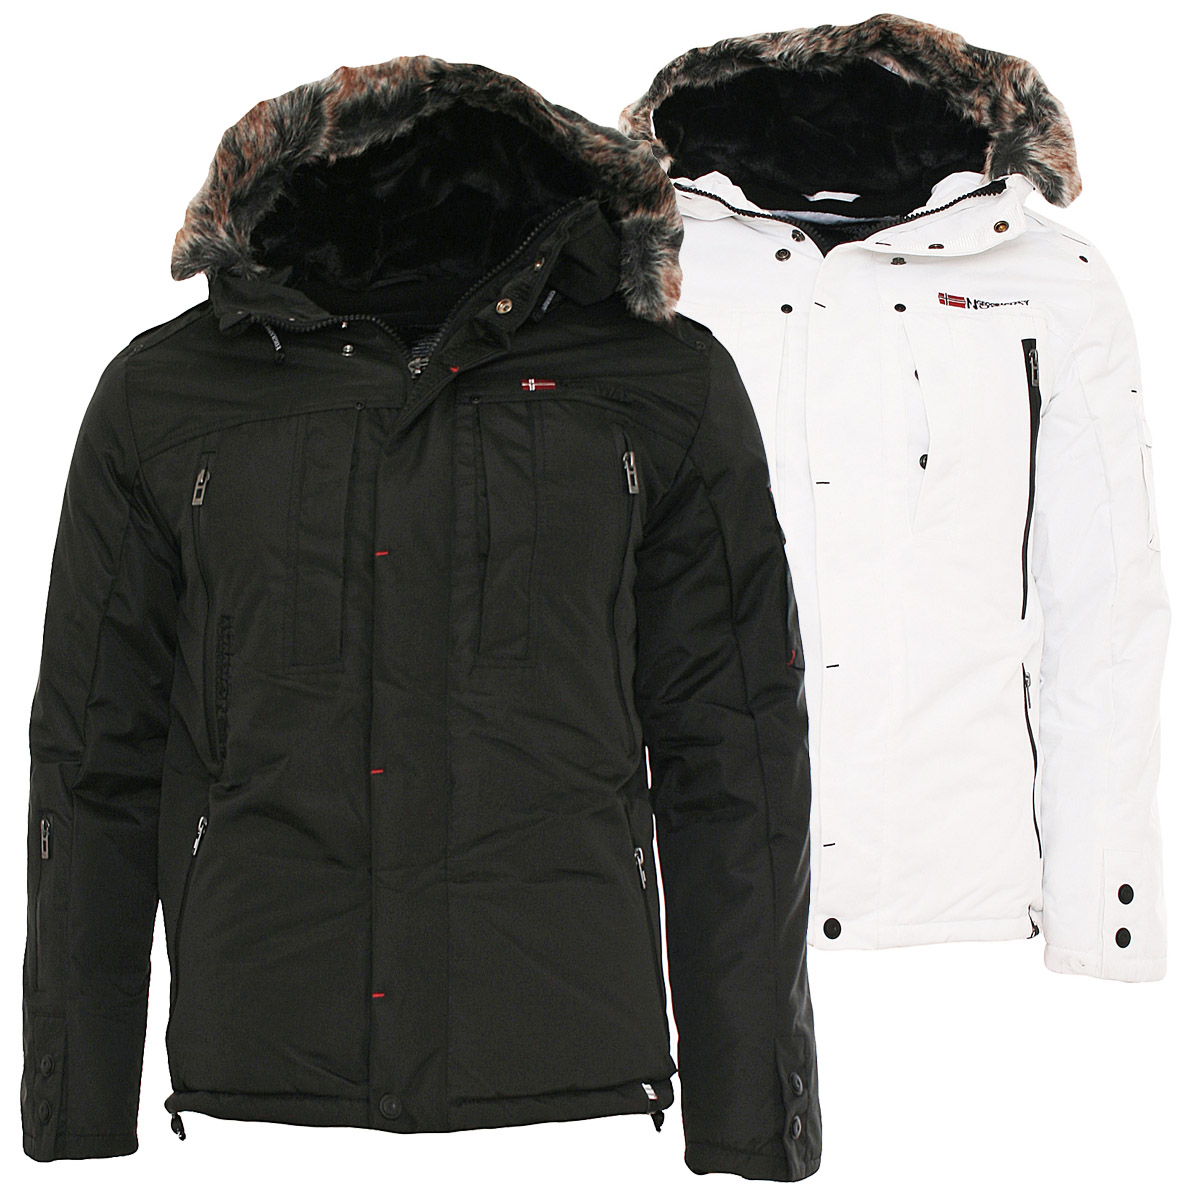 geographical norway herren winterjacke new cluses winter. Black Bedroom Furniture Sets. Home Design Ideas